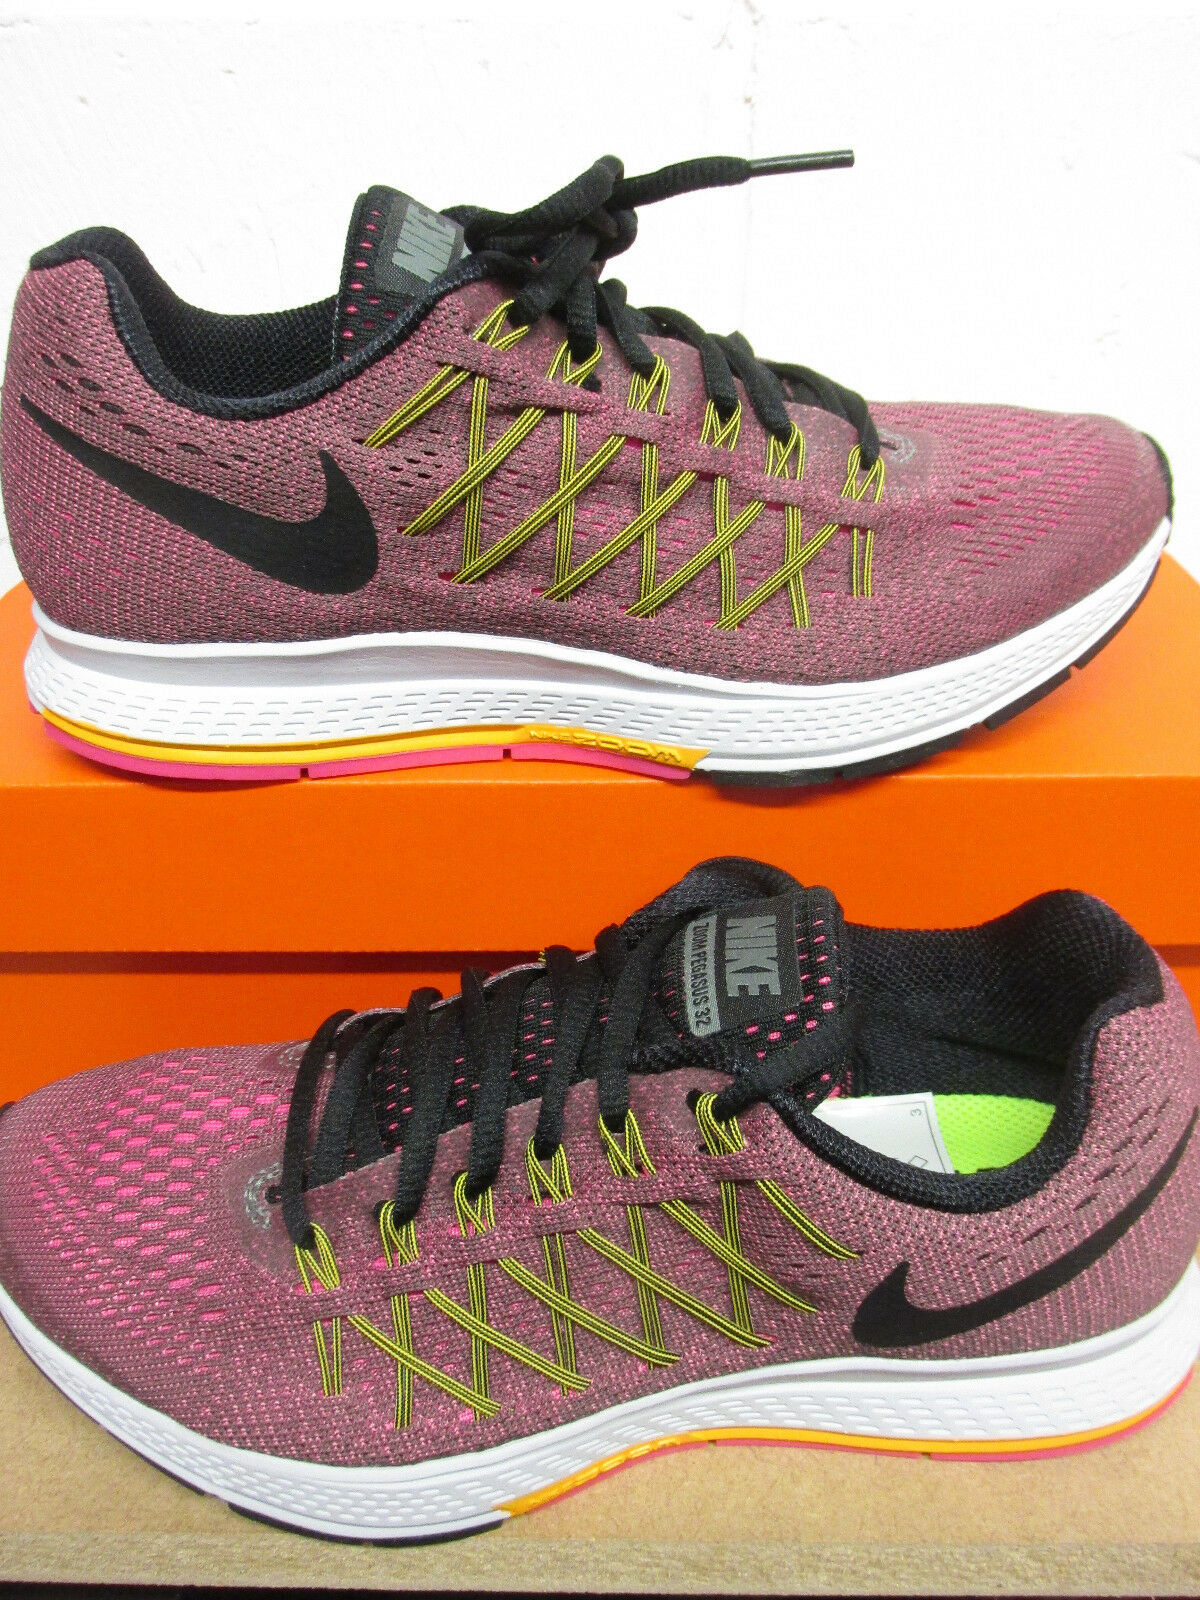 nike womens air zoom pegasus 32 running trainers 749344 008 sneakers shoes New shoes for men and women, limited time discount